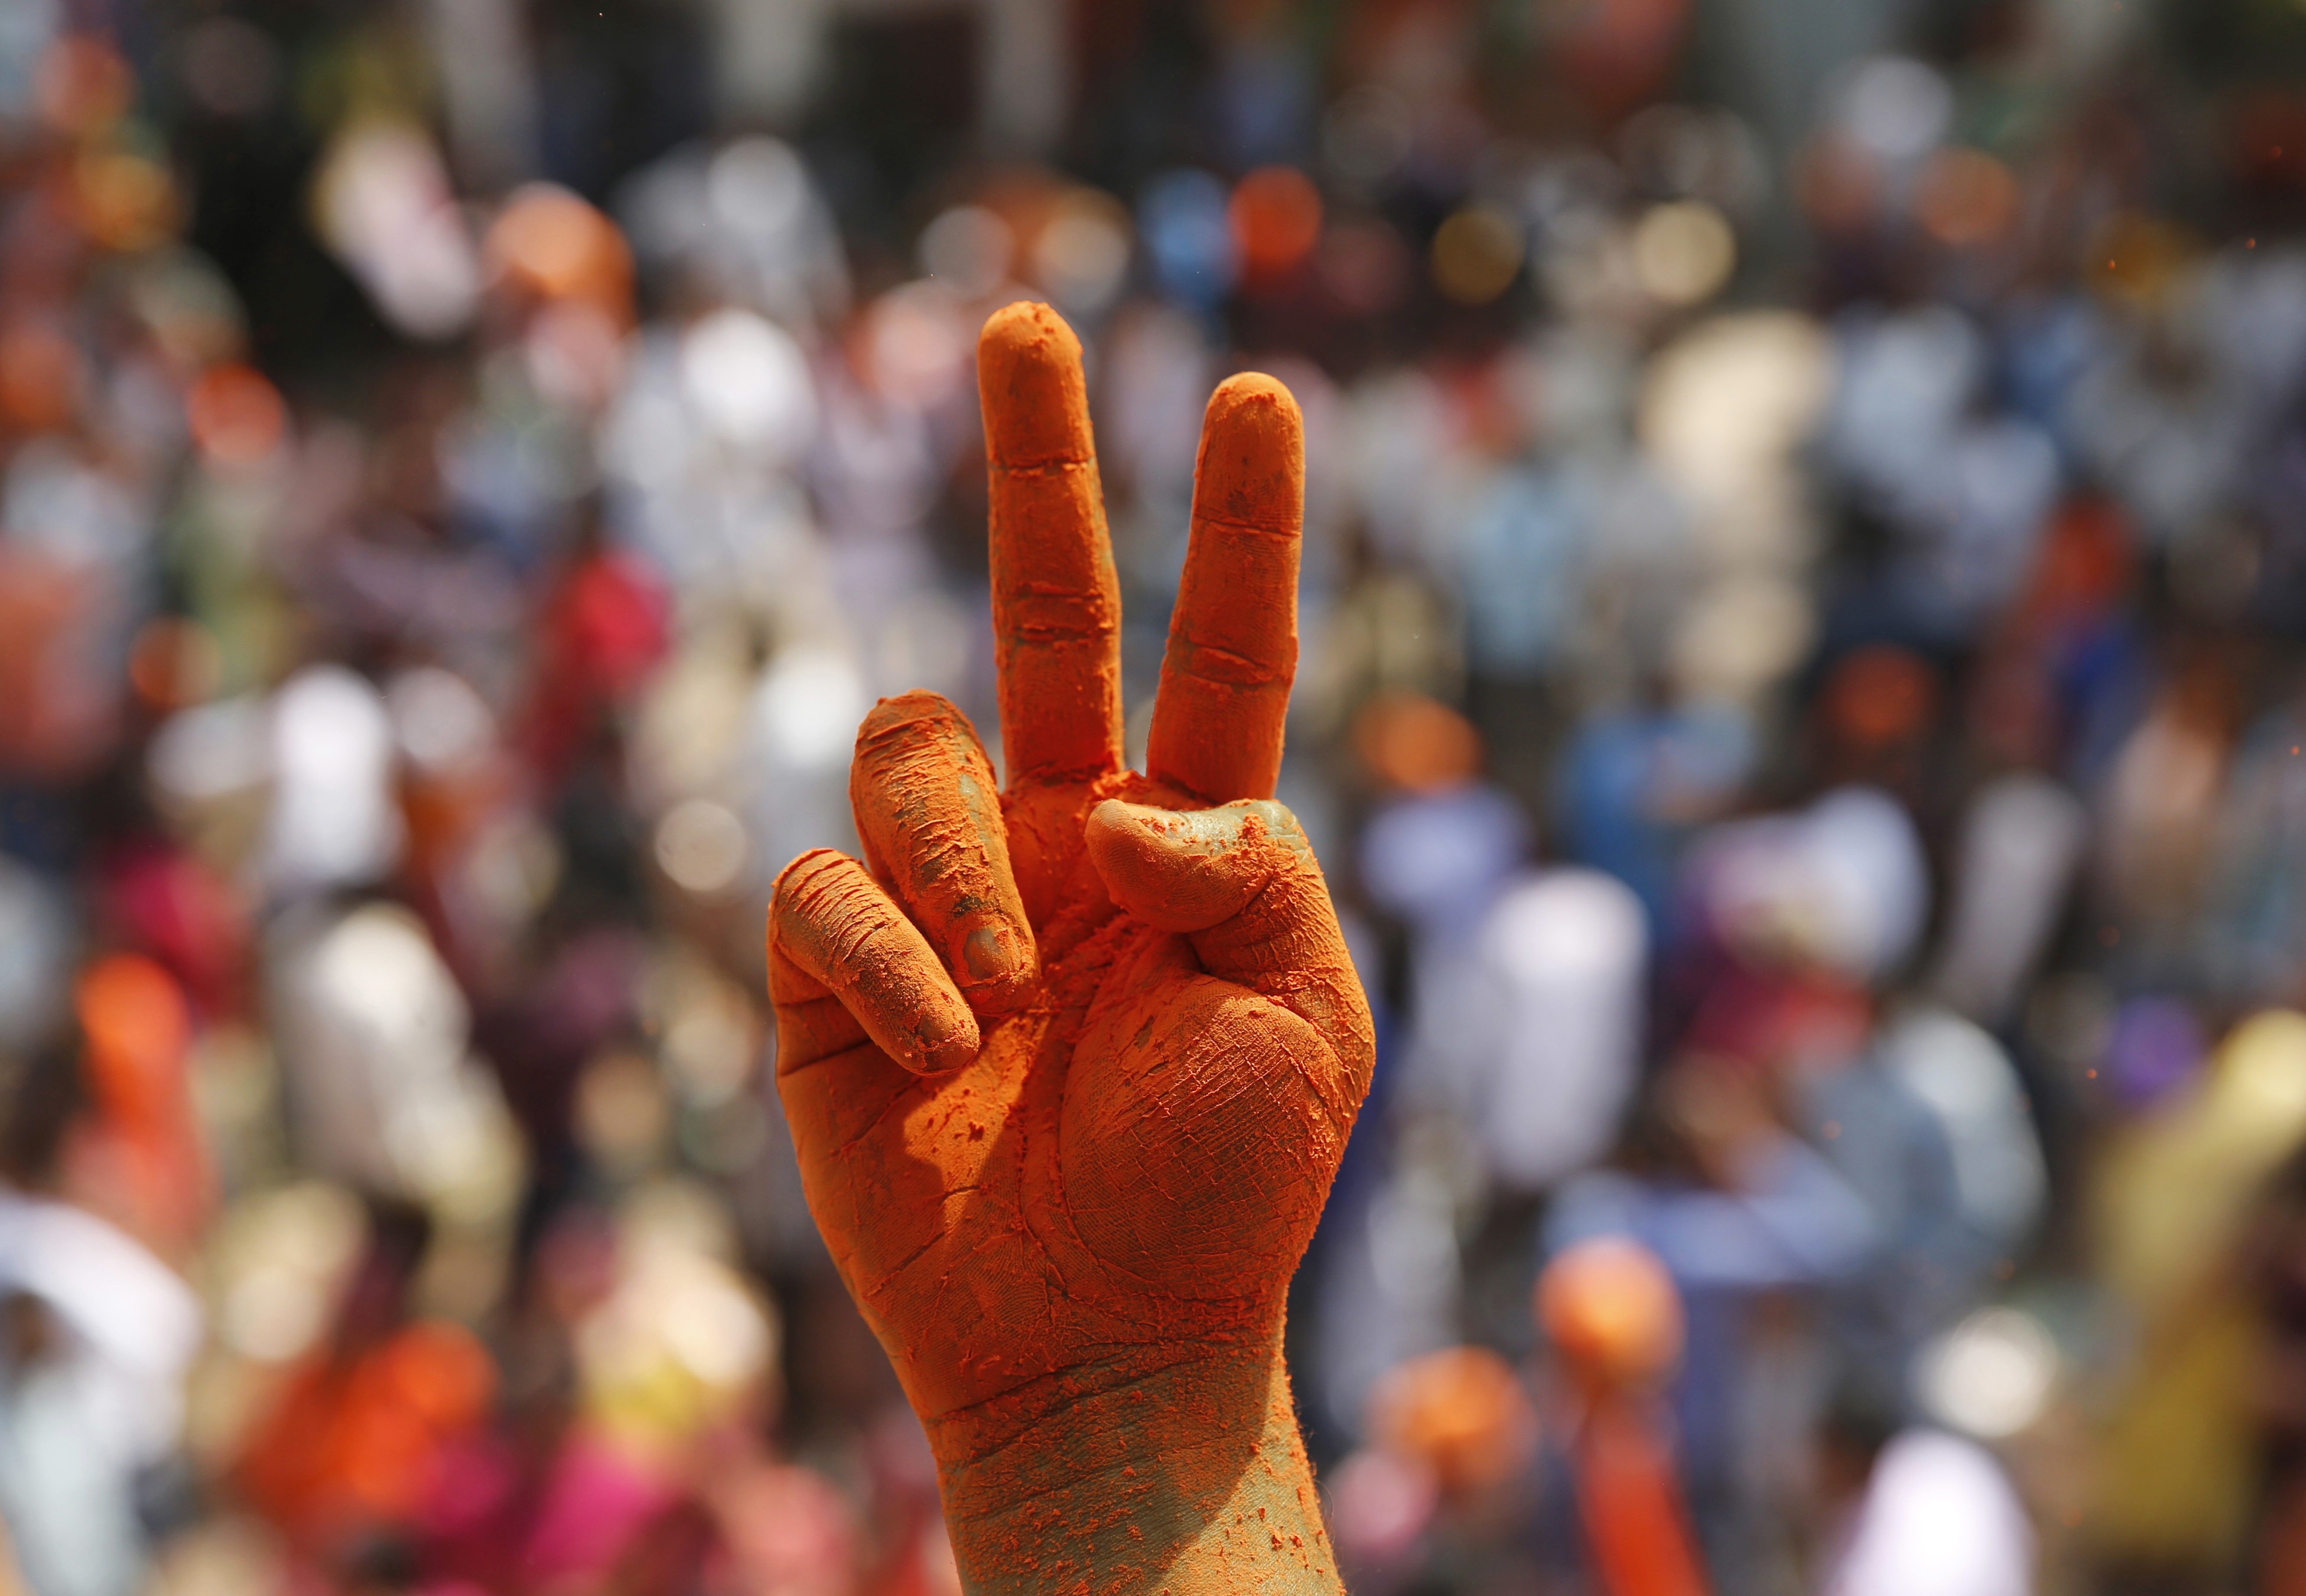 A Bharatiya Janata Party supporter's hands are covered in saffron color as he displays a victory sign in Lucknow, India, on March 11, 2017